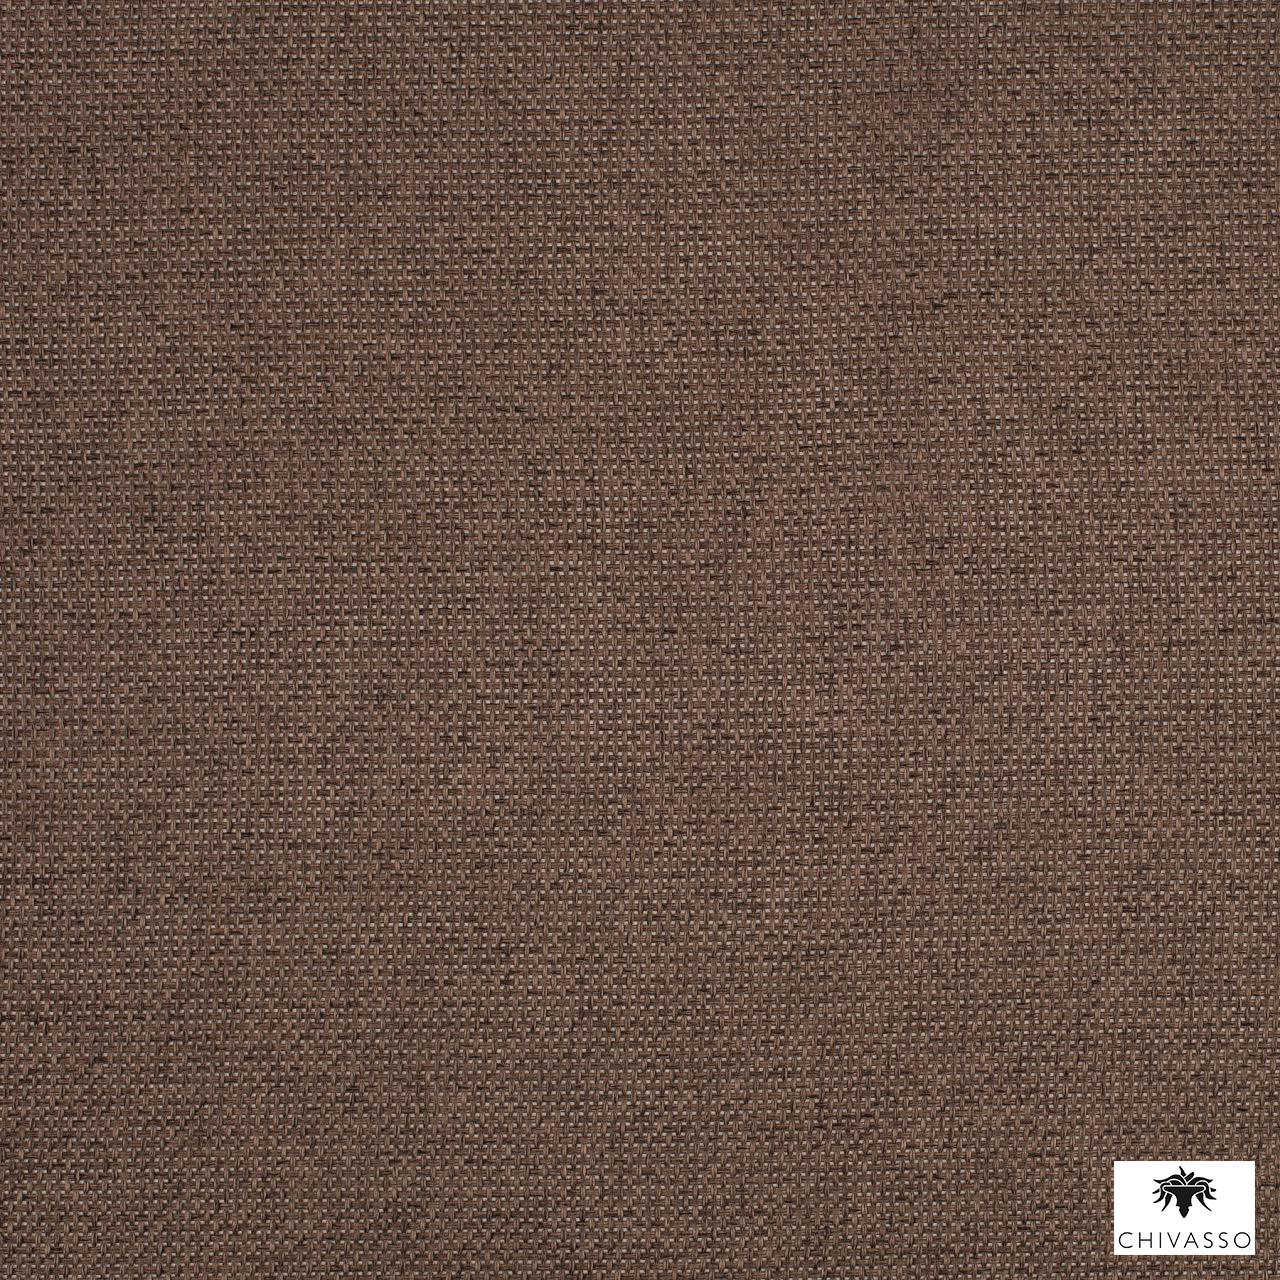 Chivasso - Twinkle - Ch2740-022    Curtain Fabric - Brown, Plain, Synthetic, Domestic Use, Railroaded, Wide Width